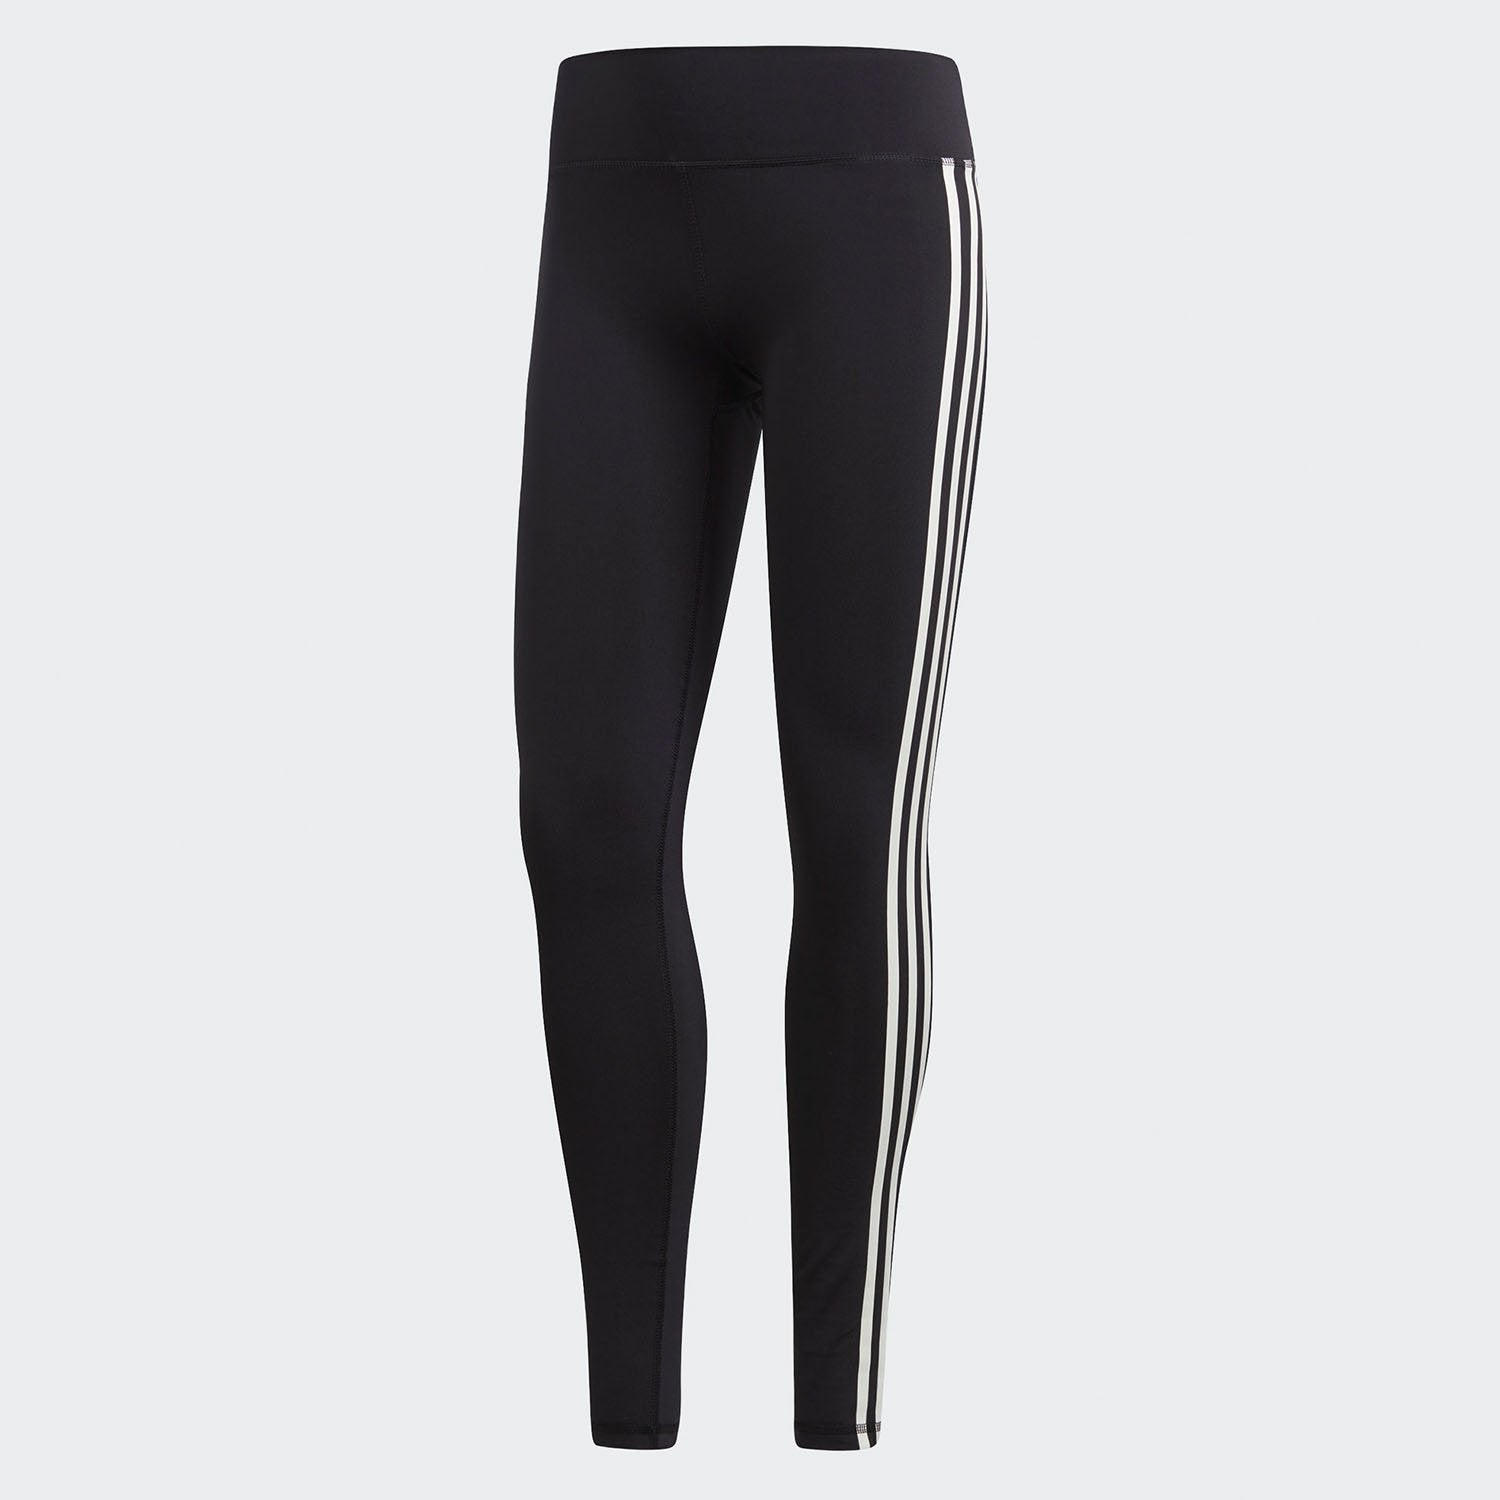 7351859f923 Buy adidas Women Believe This 3-Stripes Solid Tights, Black Online in  Singapore | Royal Sporting House